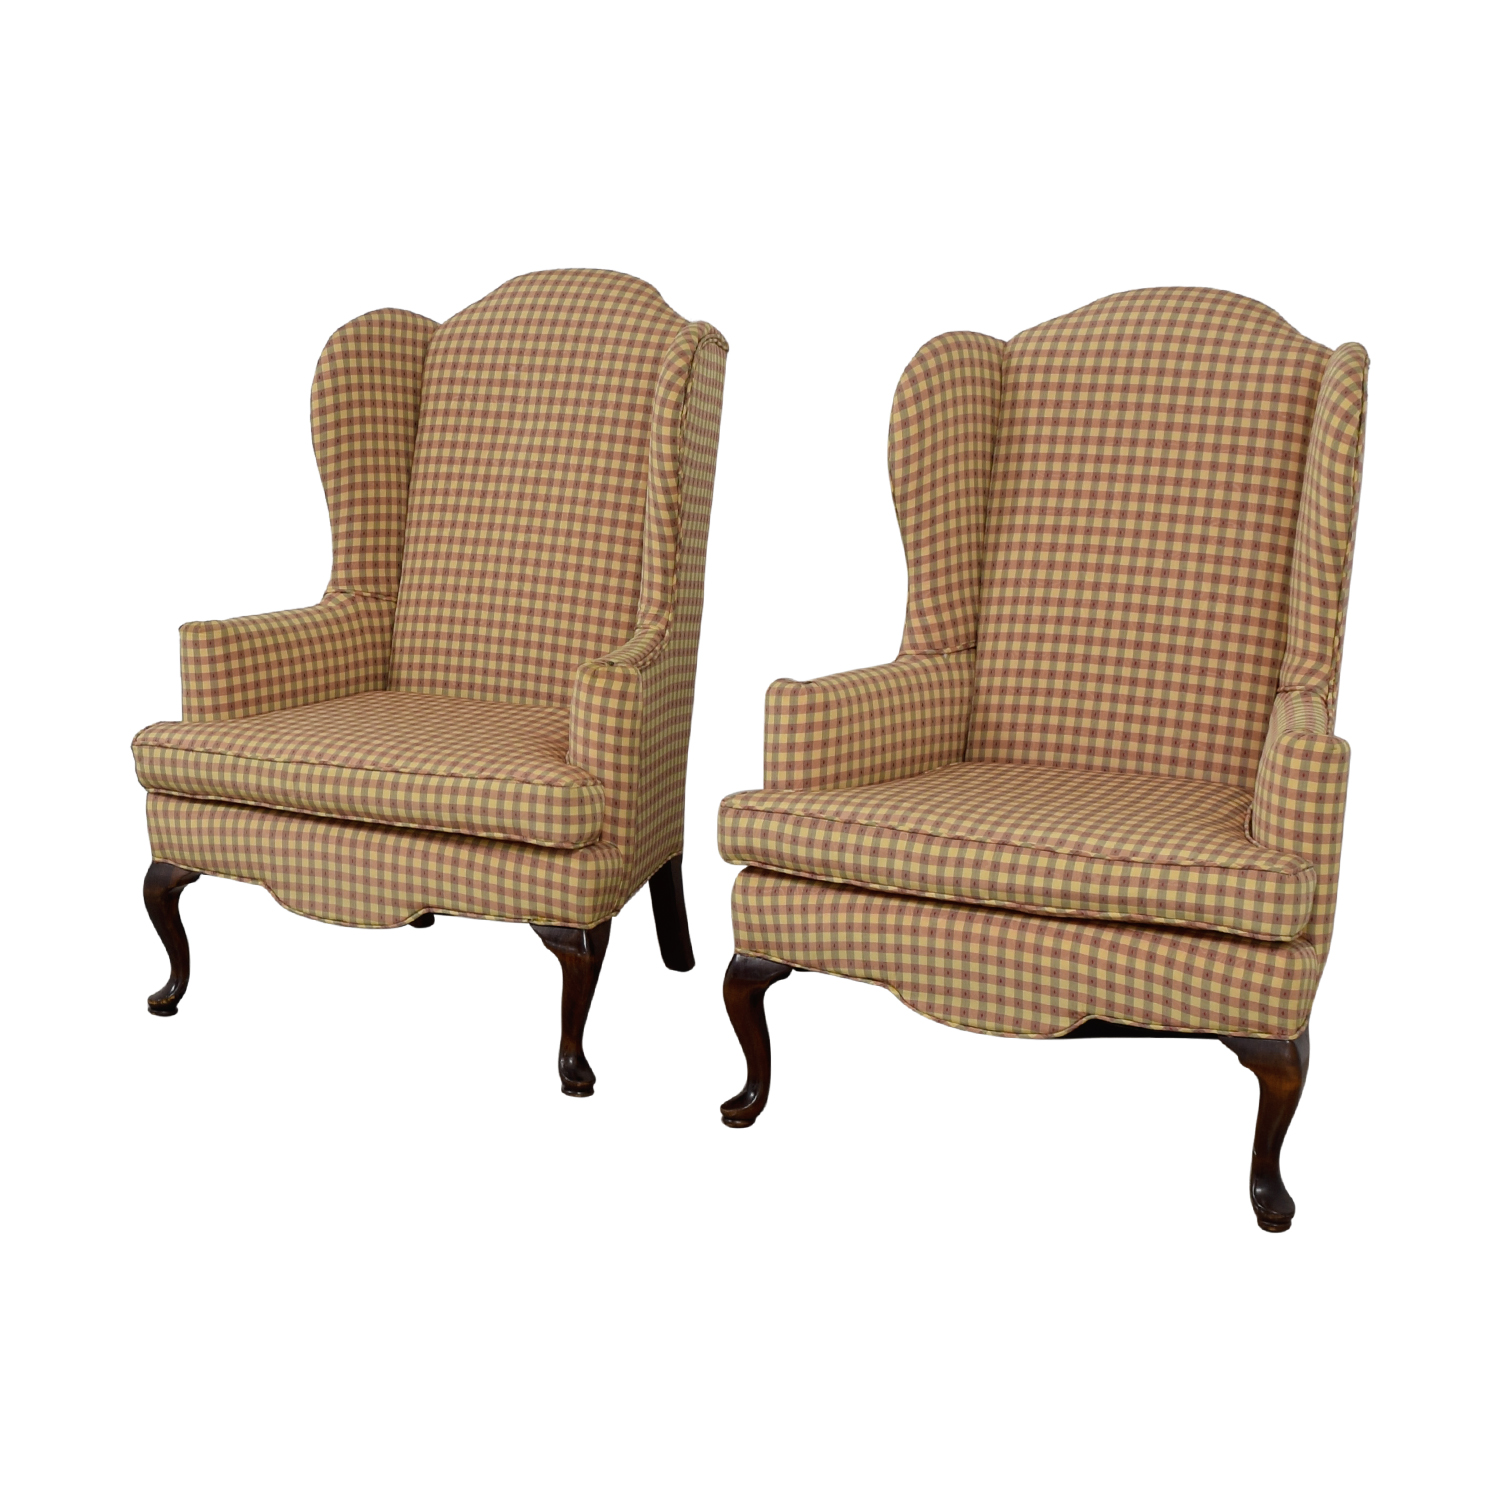 Ethan Allen Plaid Queen Anne Accent Chairs / Accent Chairs